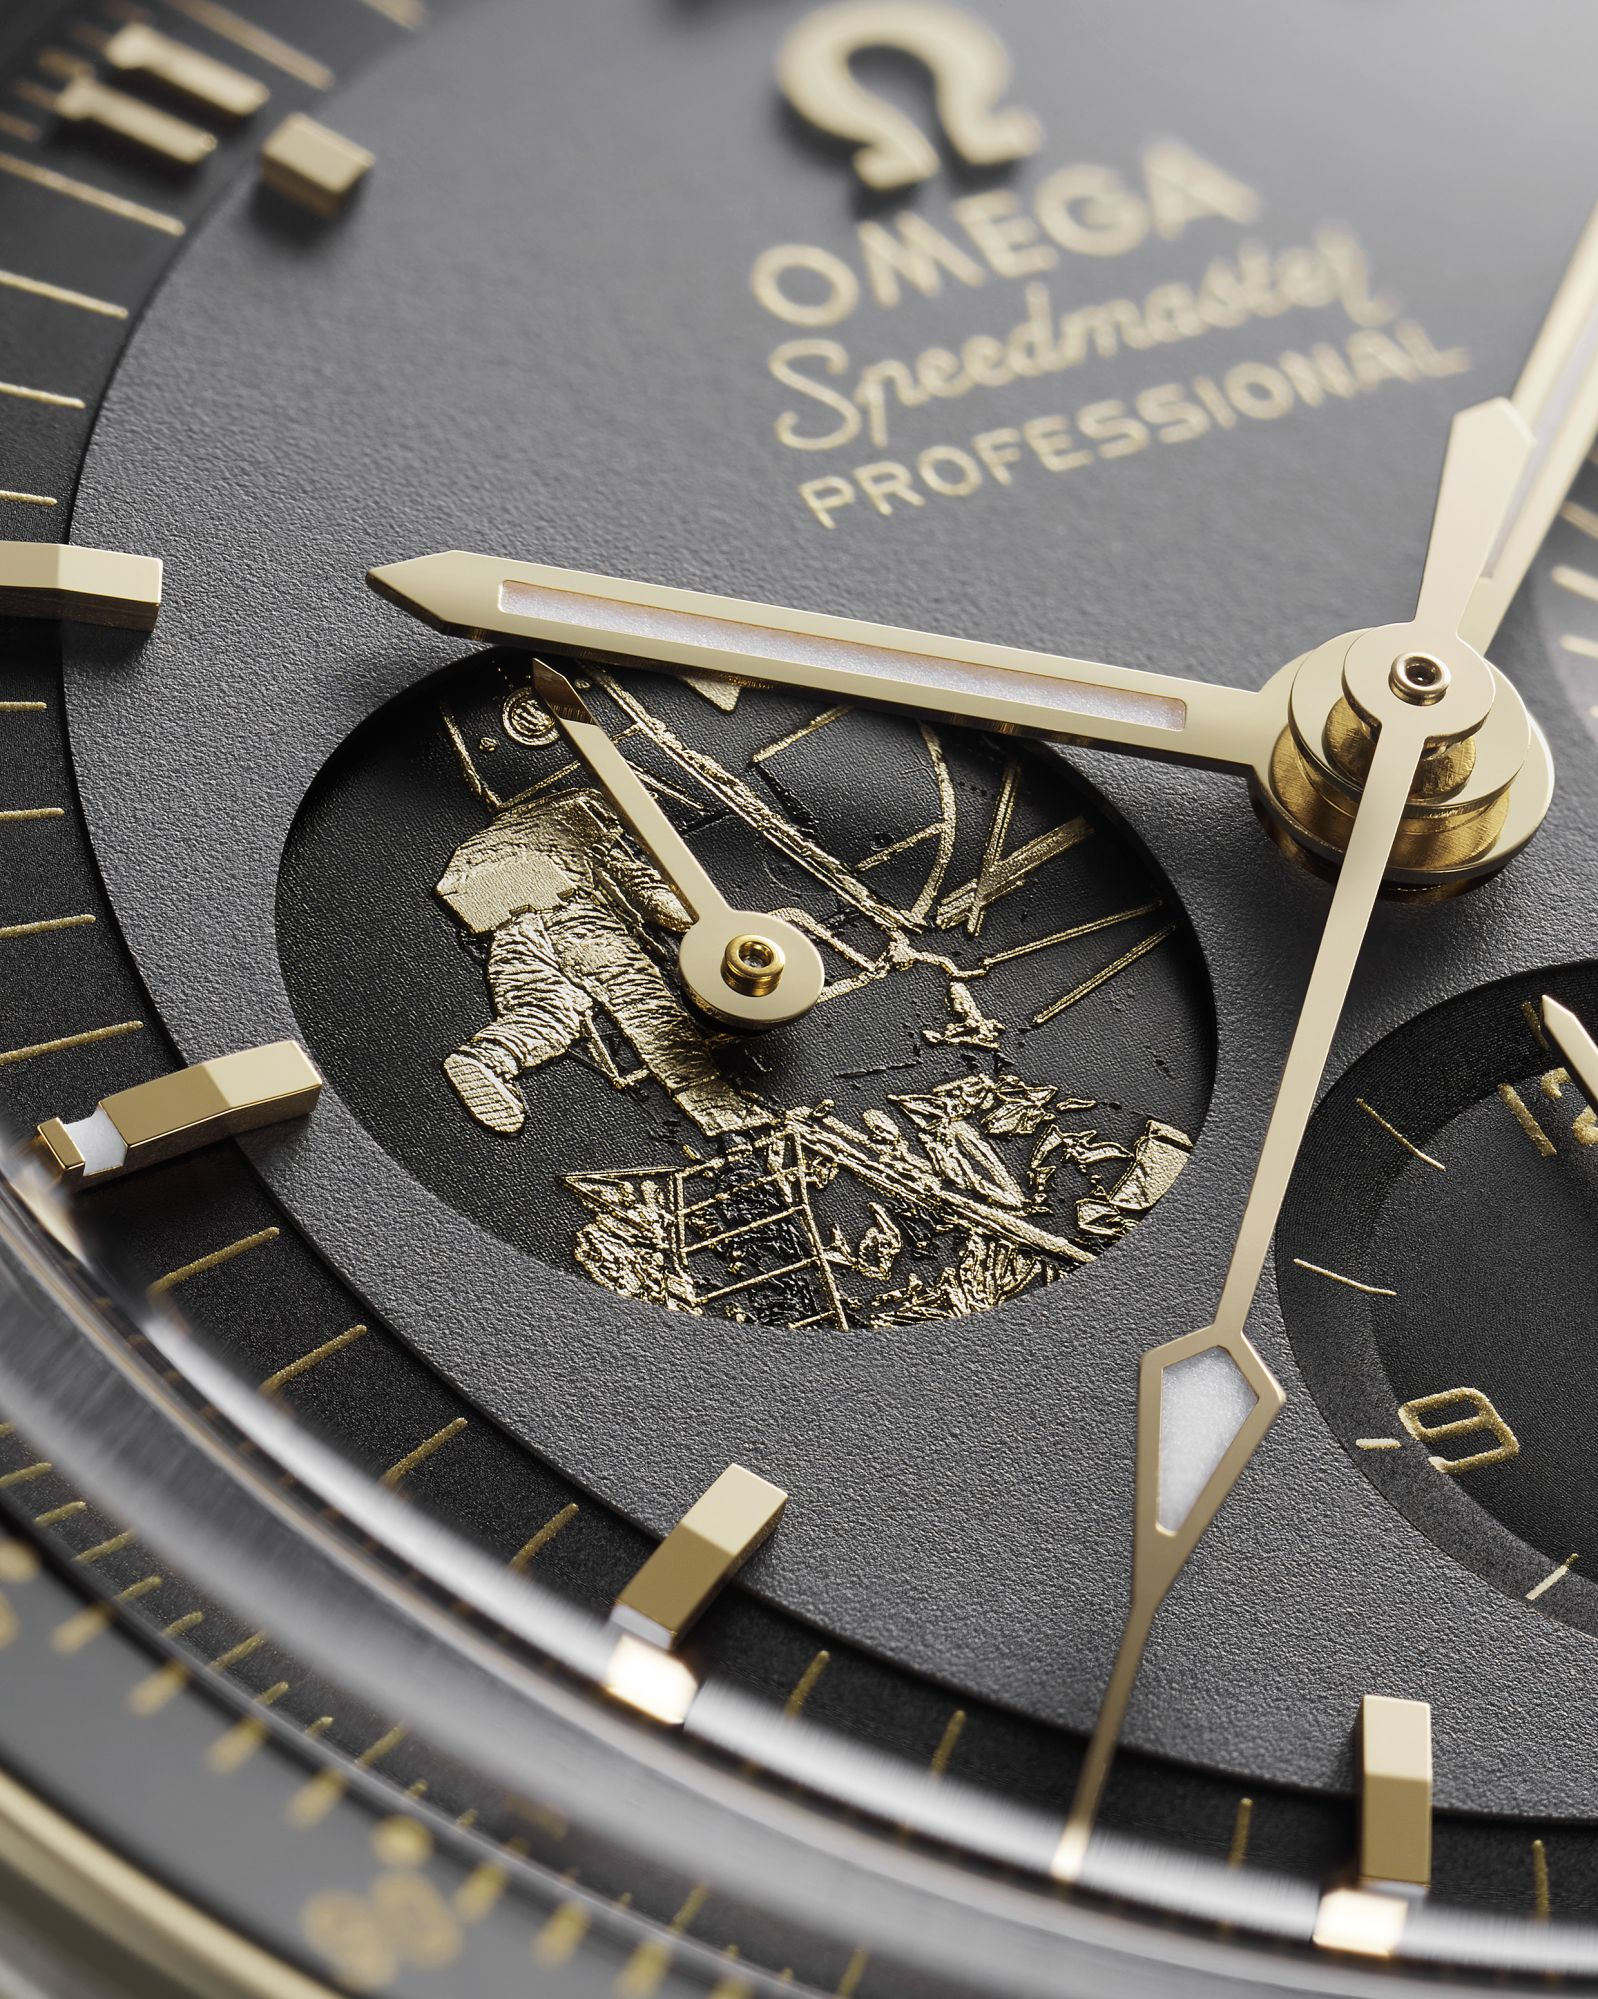 The Limited Edition Omega Speedmaster Apollo 11 Celebrates 50 Years Since We Landed On The Moon